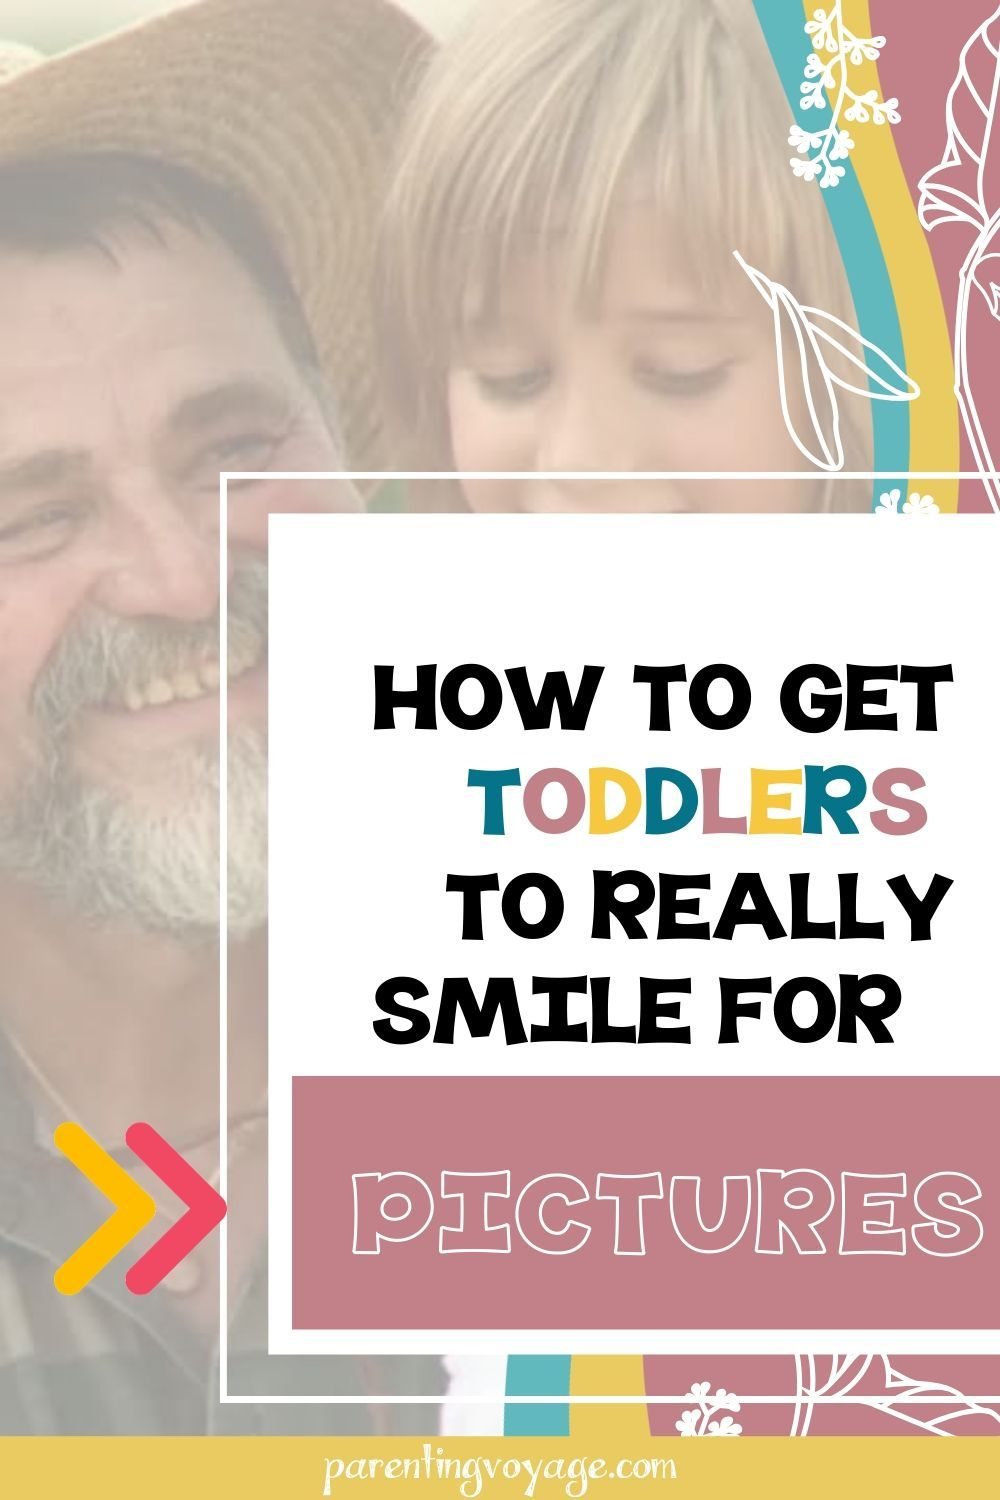 af752b460d97b64ac0a797d4327a15b9 - How To Get A Toddler To Smile For Pictures